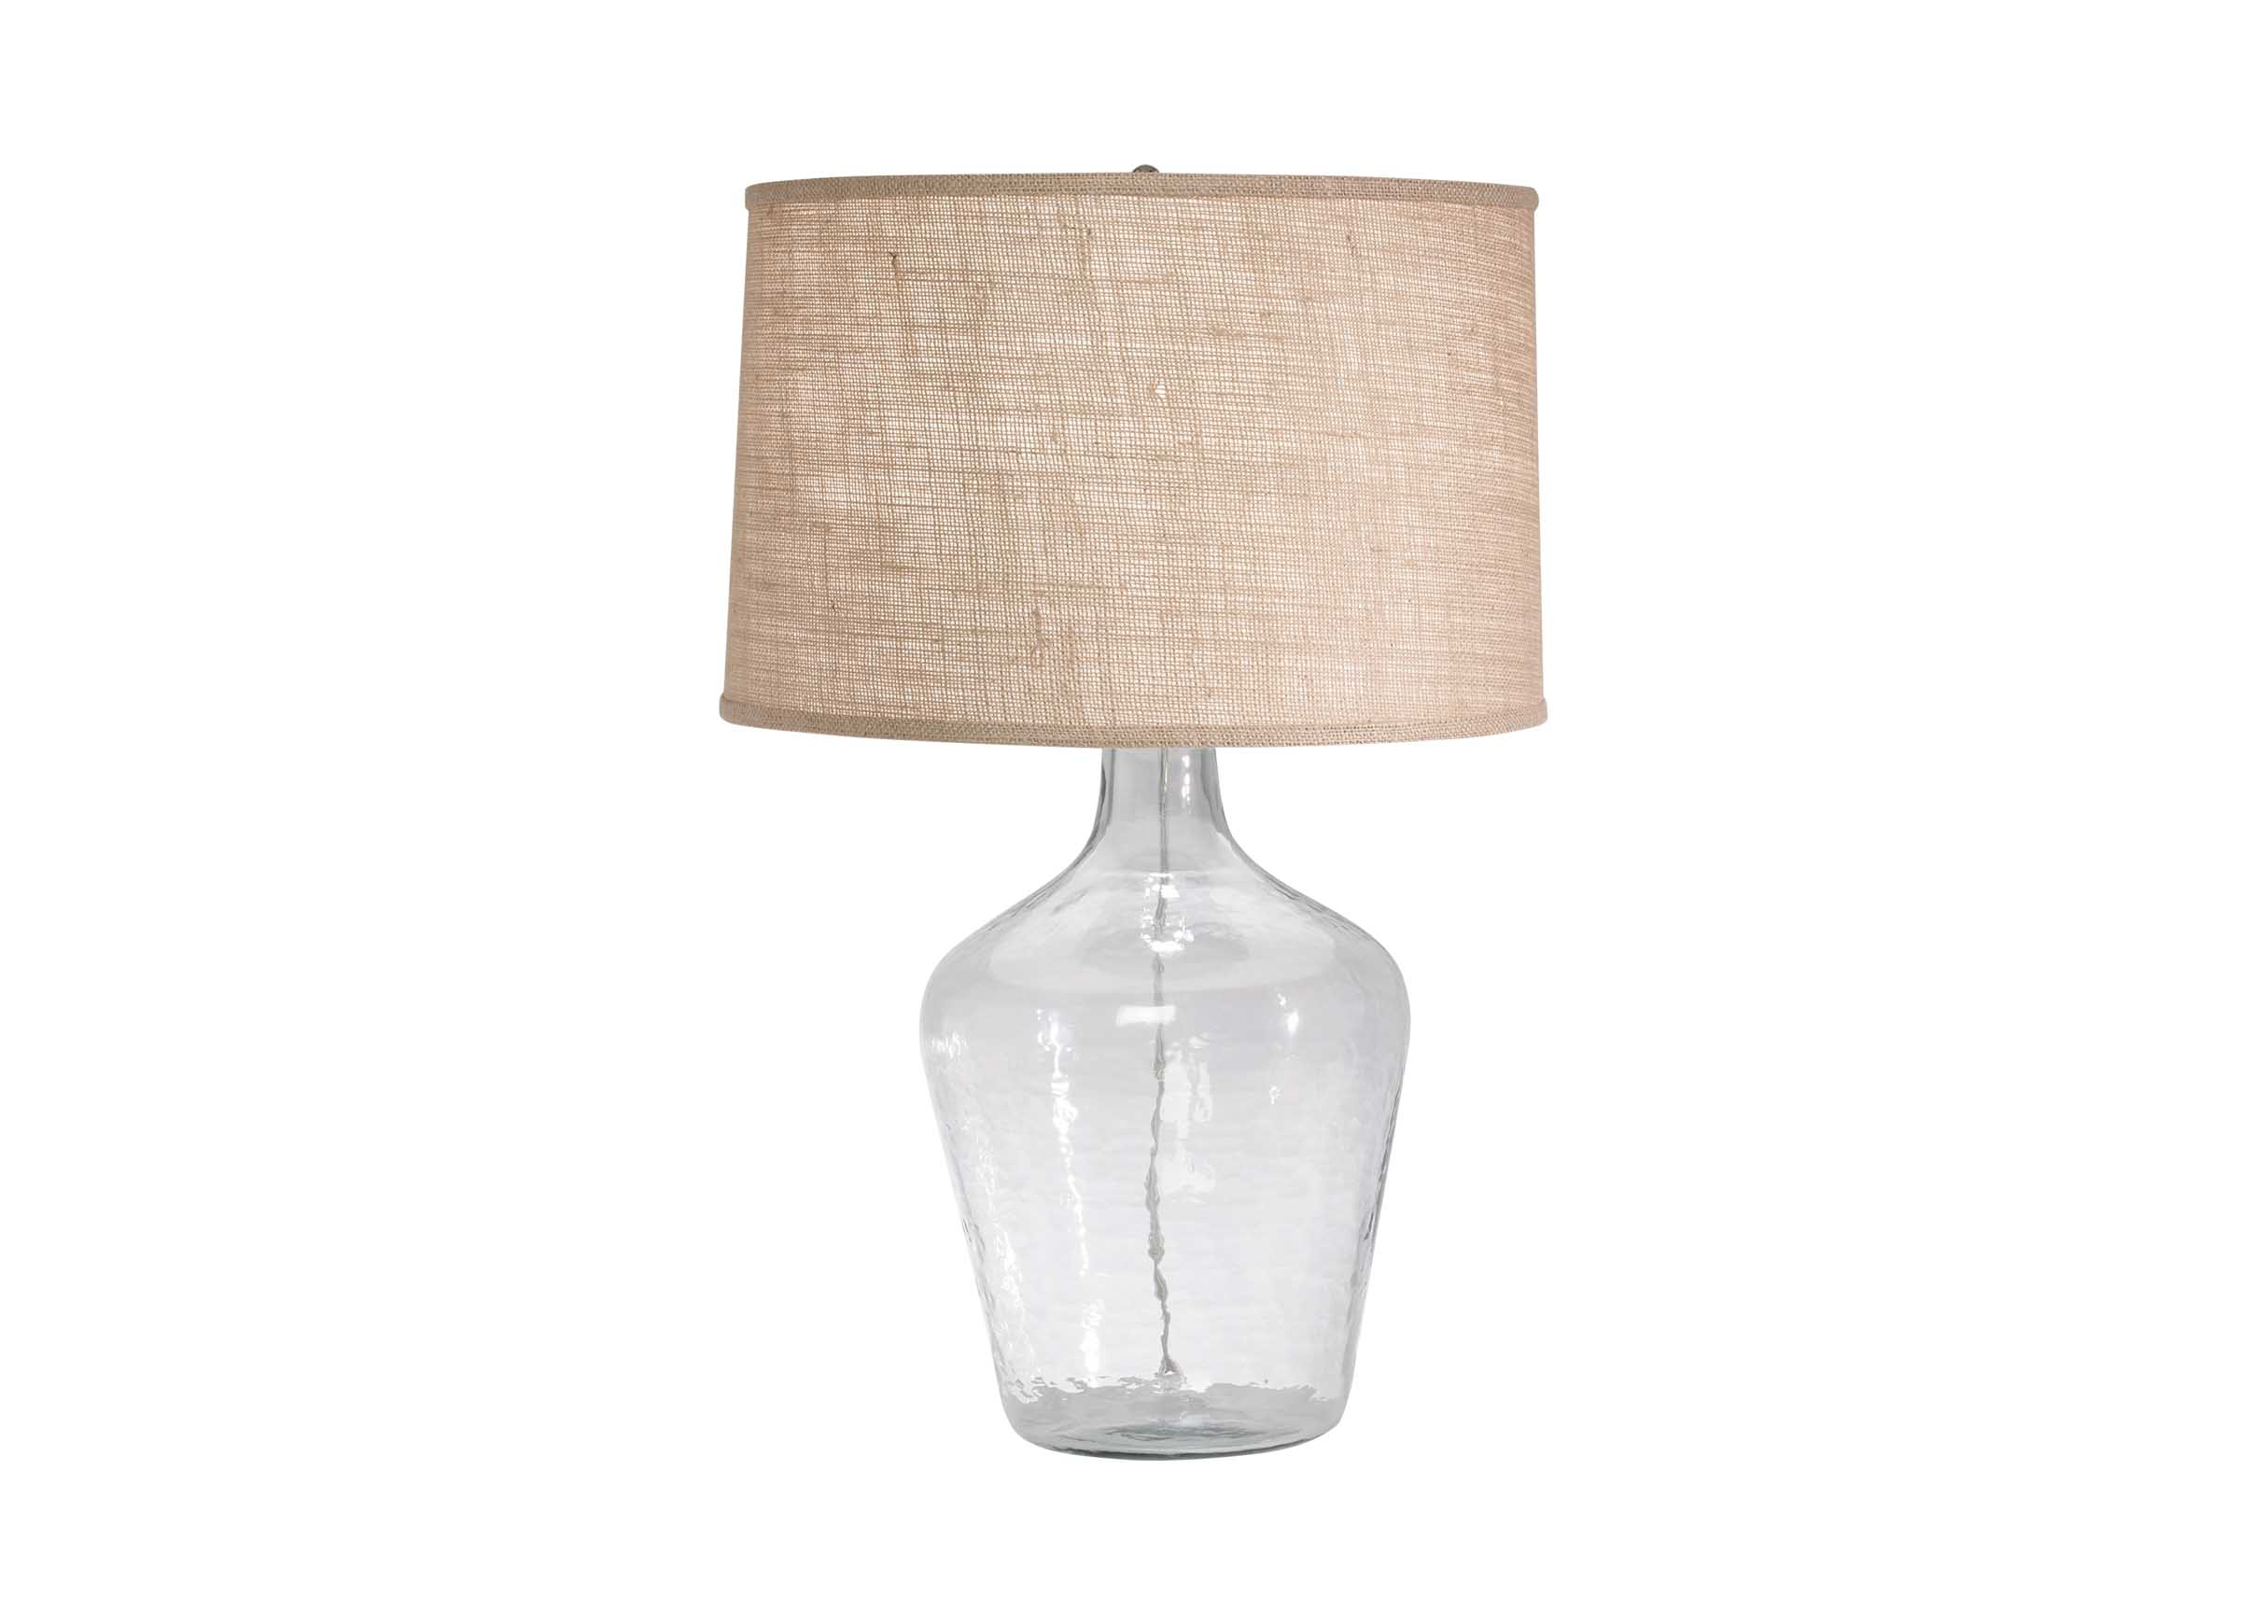 Glass plum jar table lamp table lamps images glass plum jar table lamp largegray geotapseo Gallery